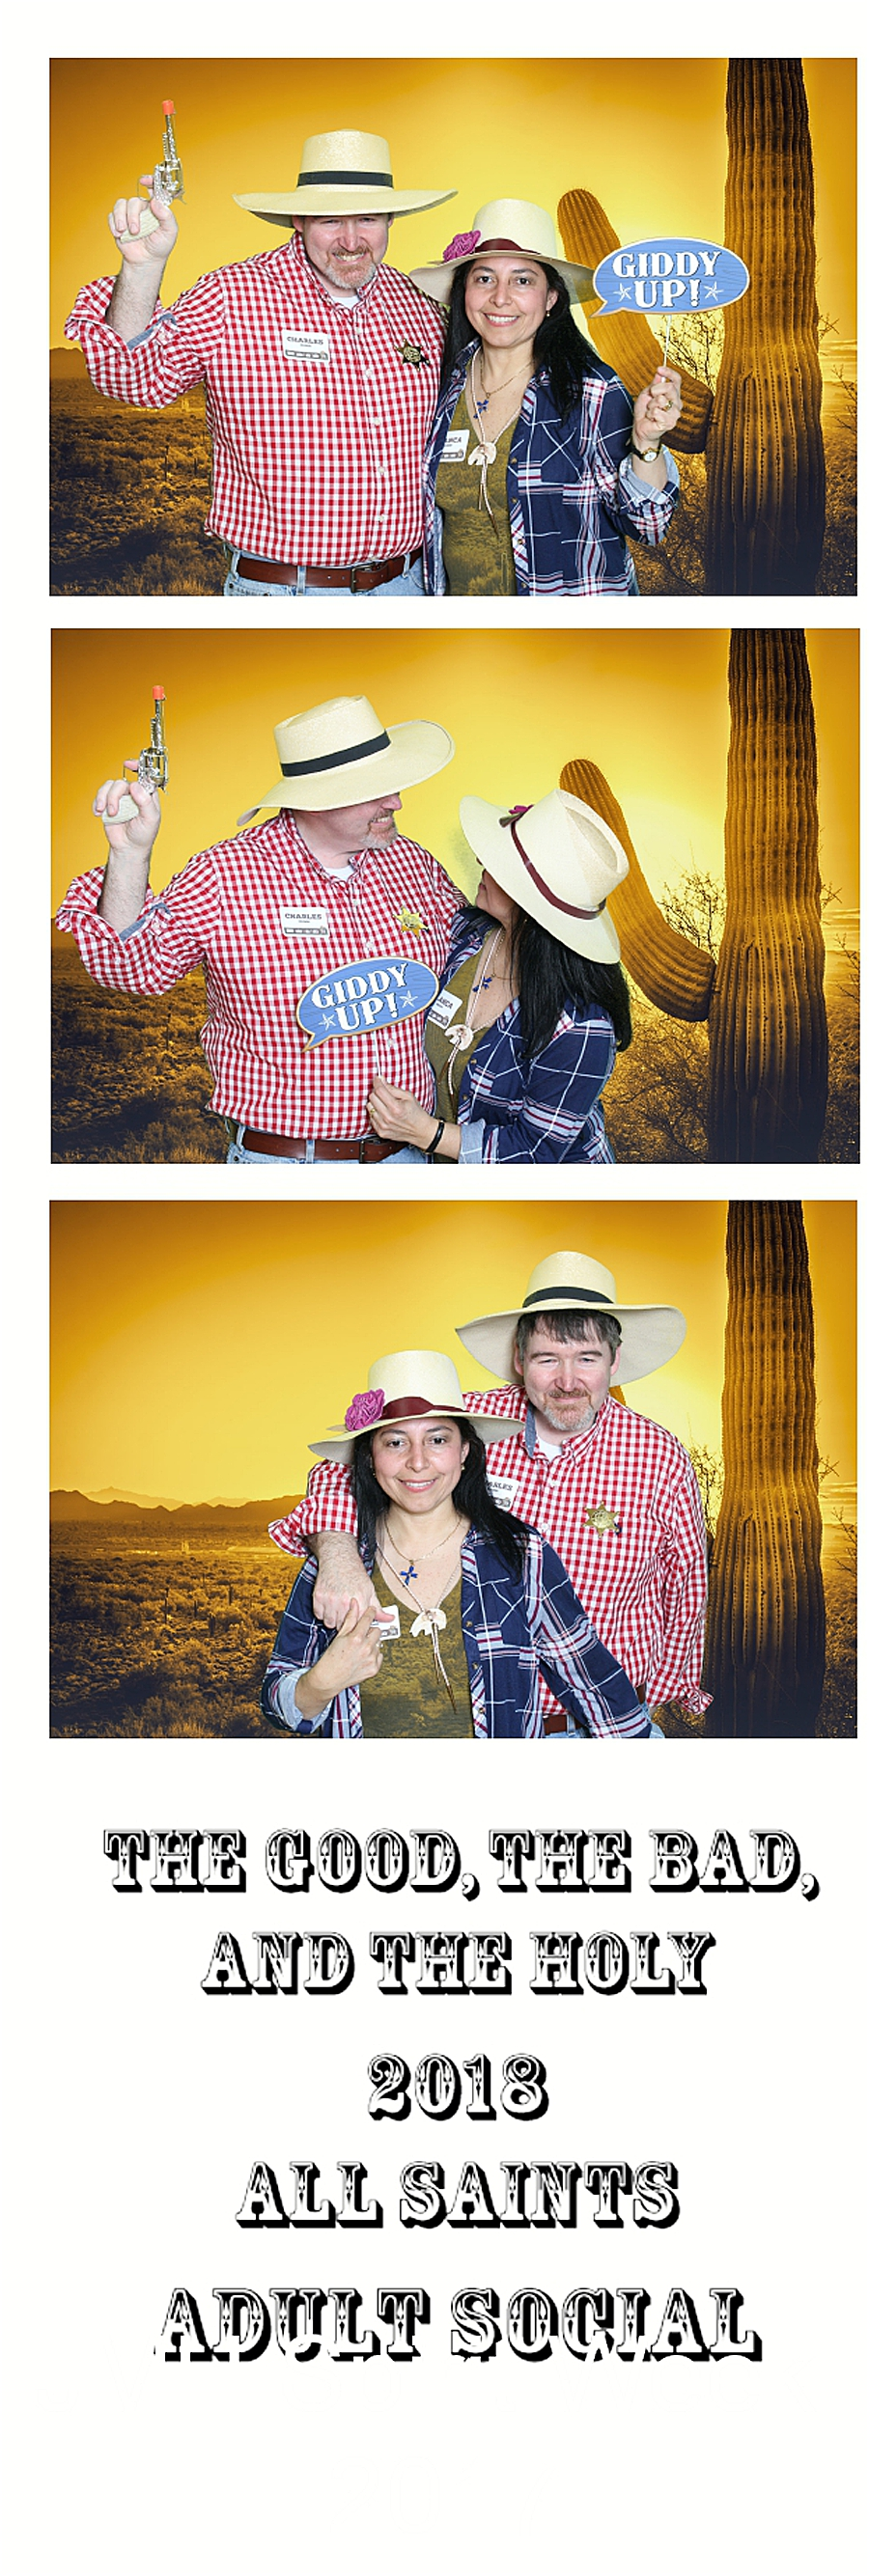 Knoxville Photo Booth_1340.jpg